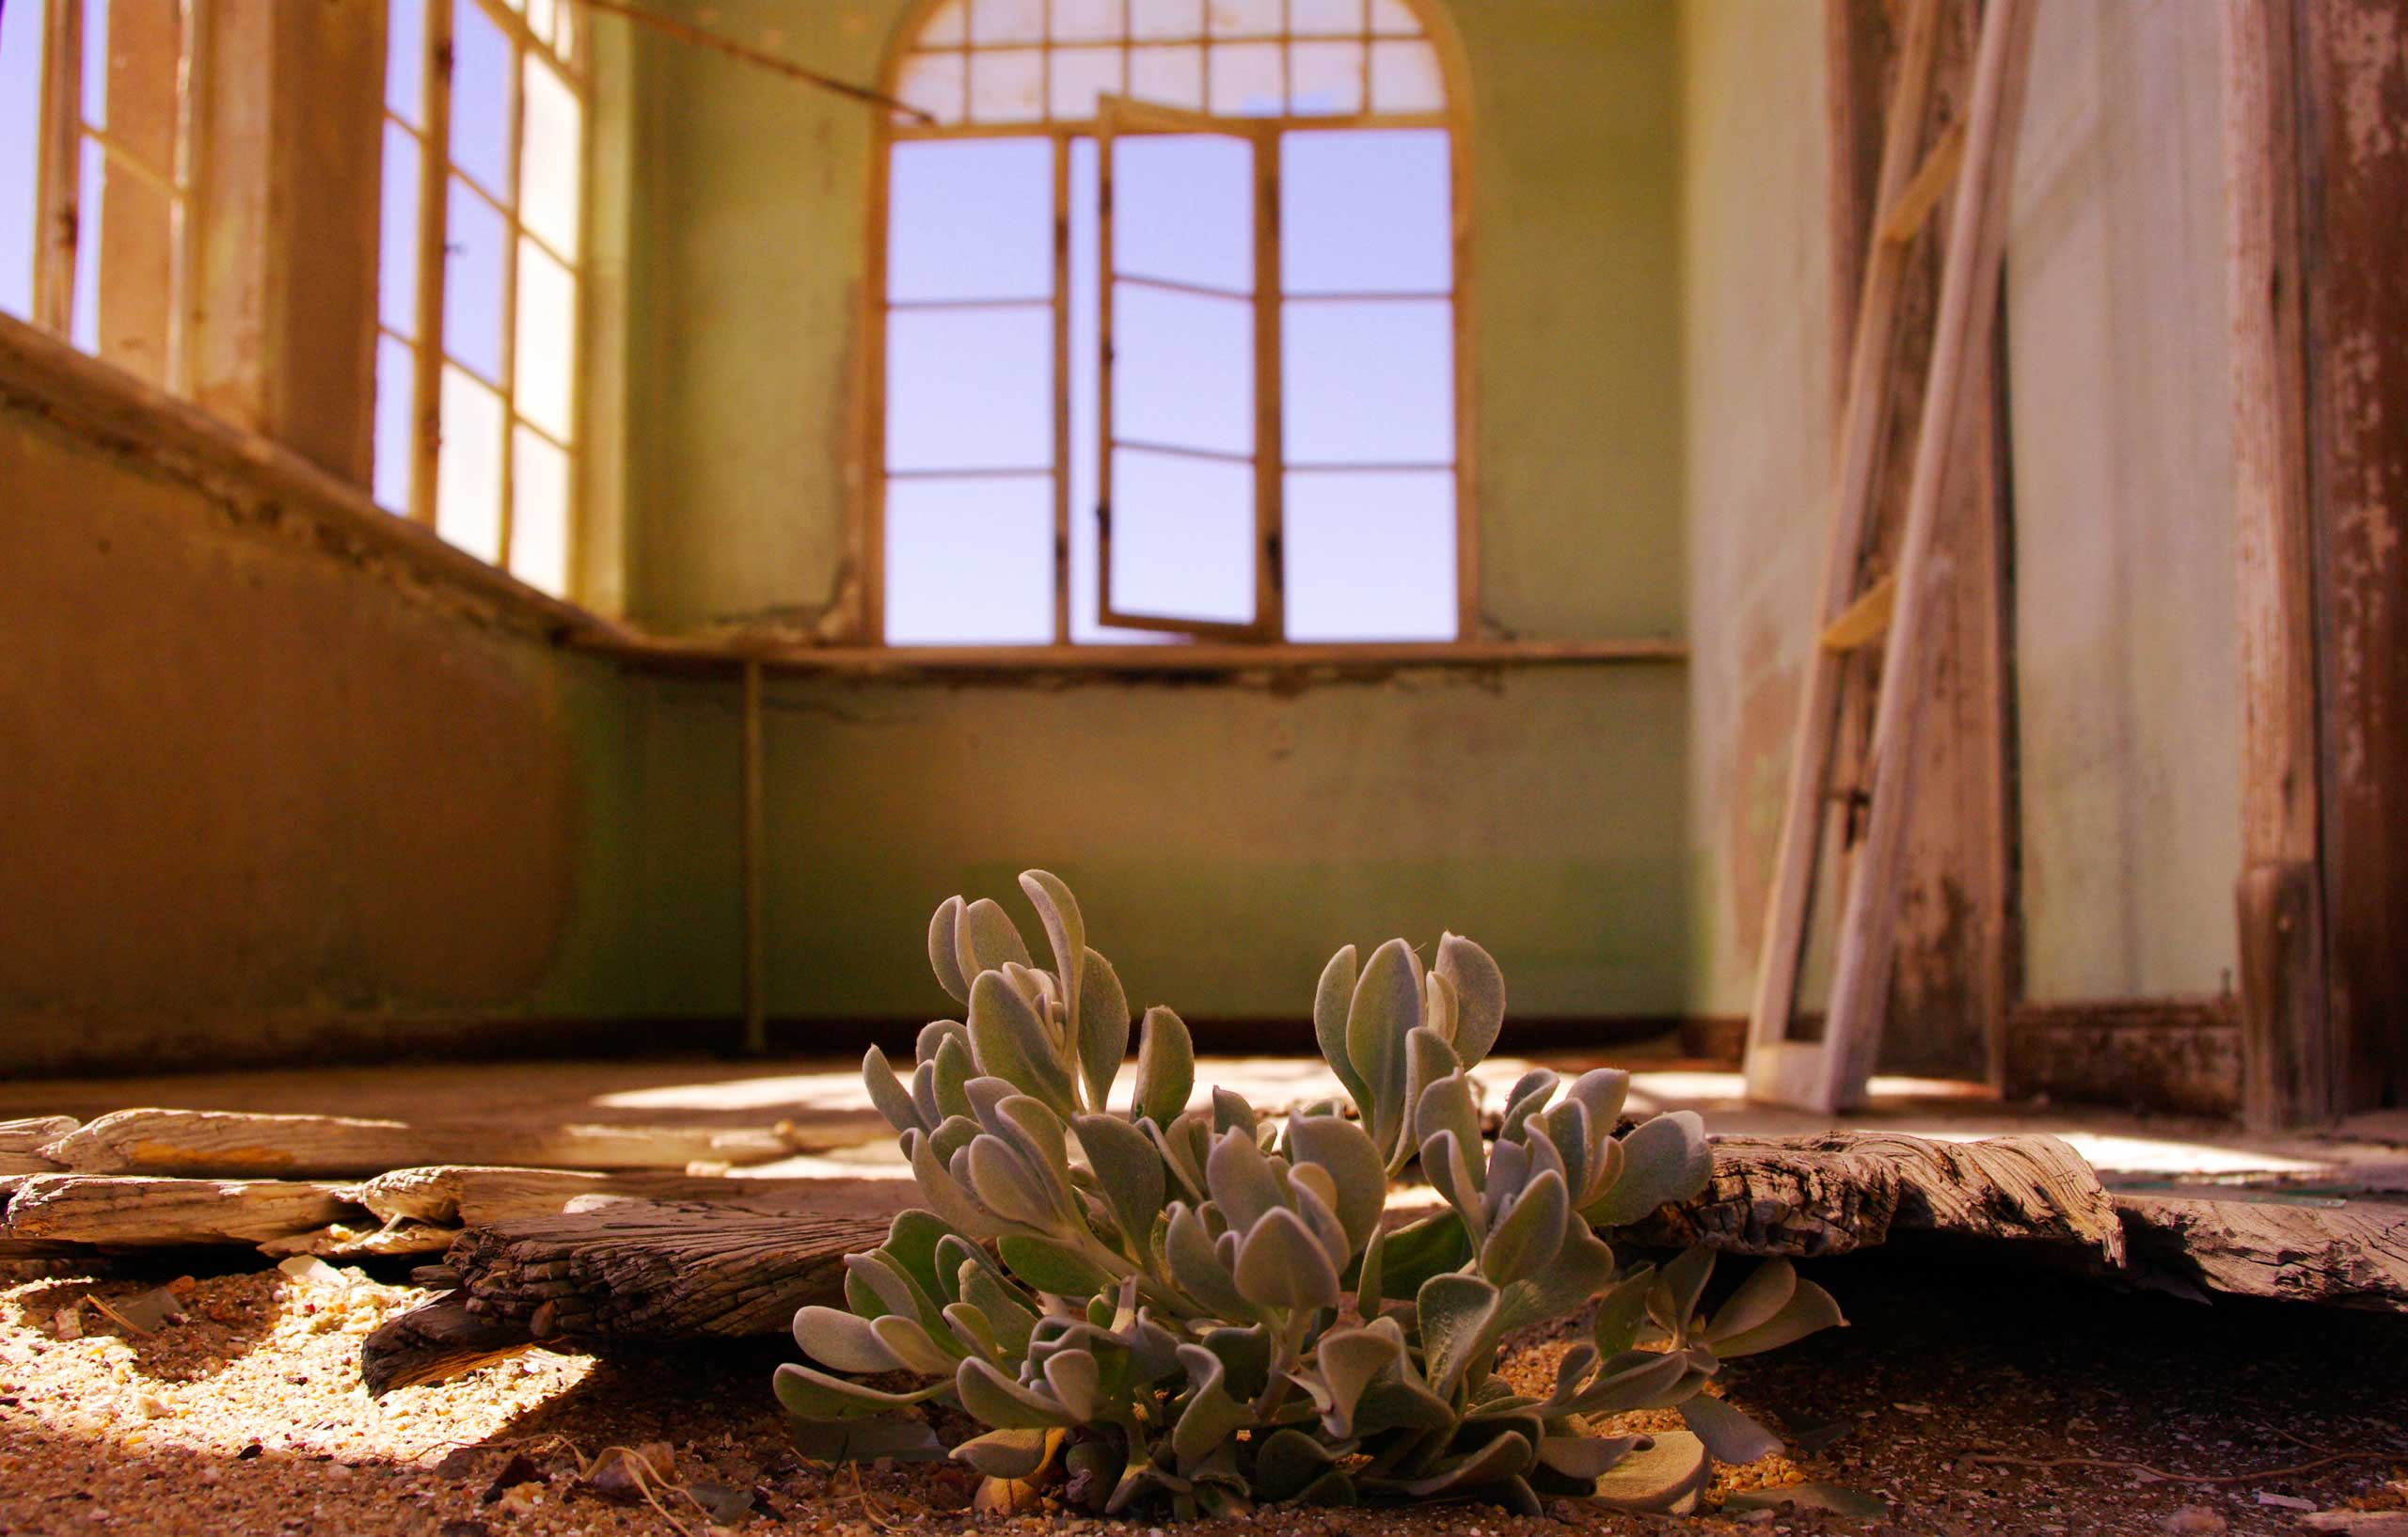 A plant takes advantage of the available shelter in a dilapidated house in Kolmanskop, Namibia.